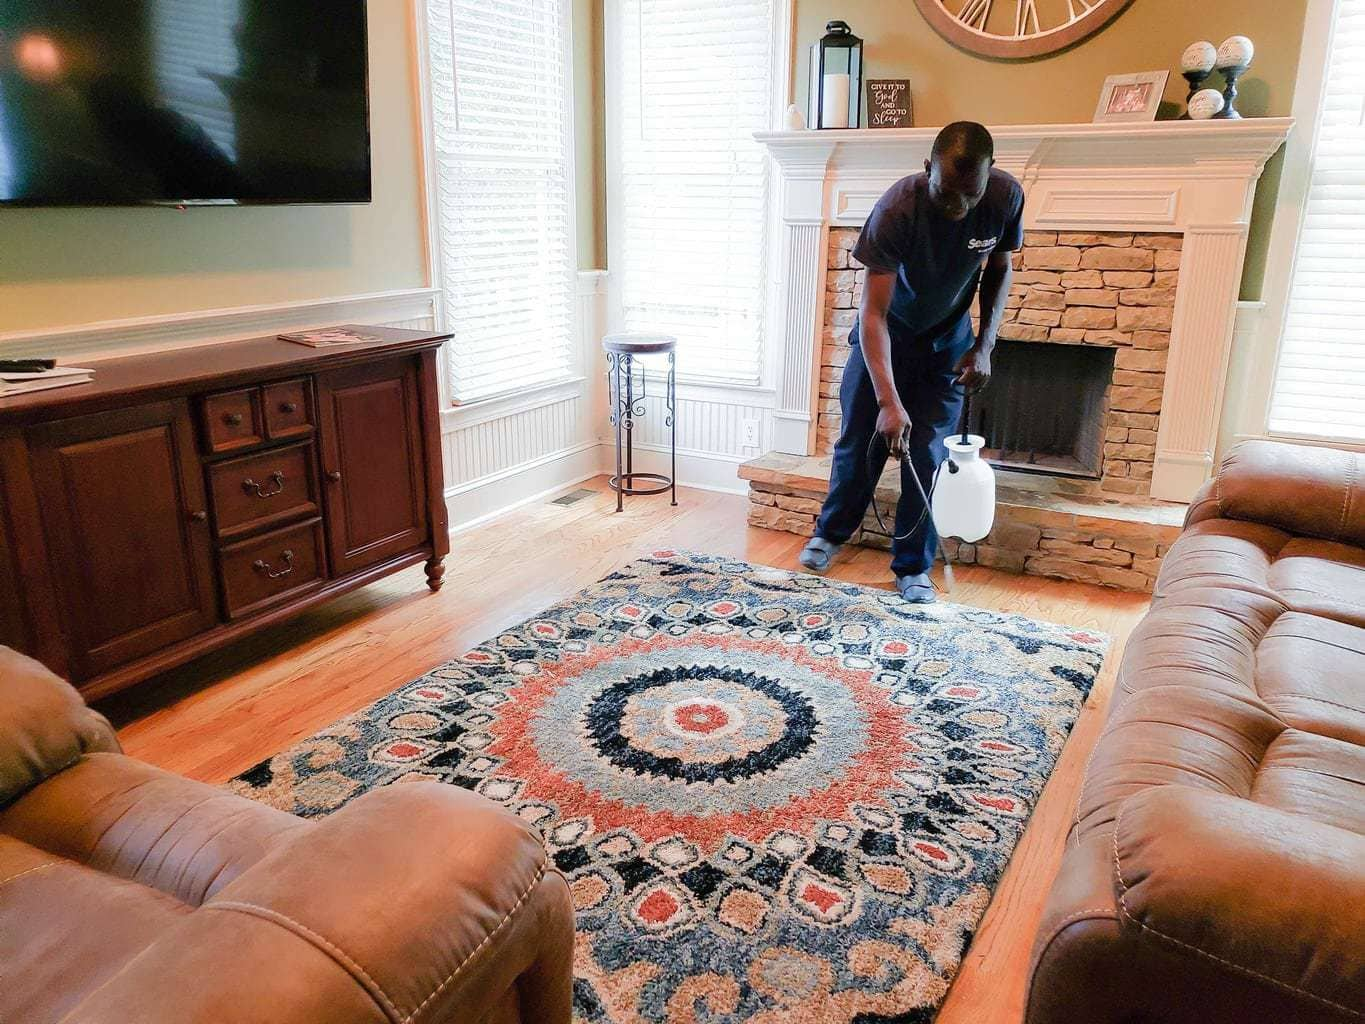 Scotchguard for carpets, carpet cleaning tips